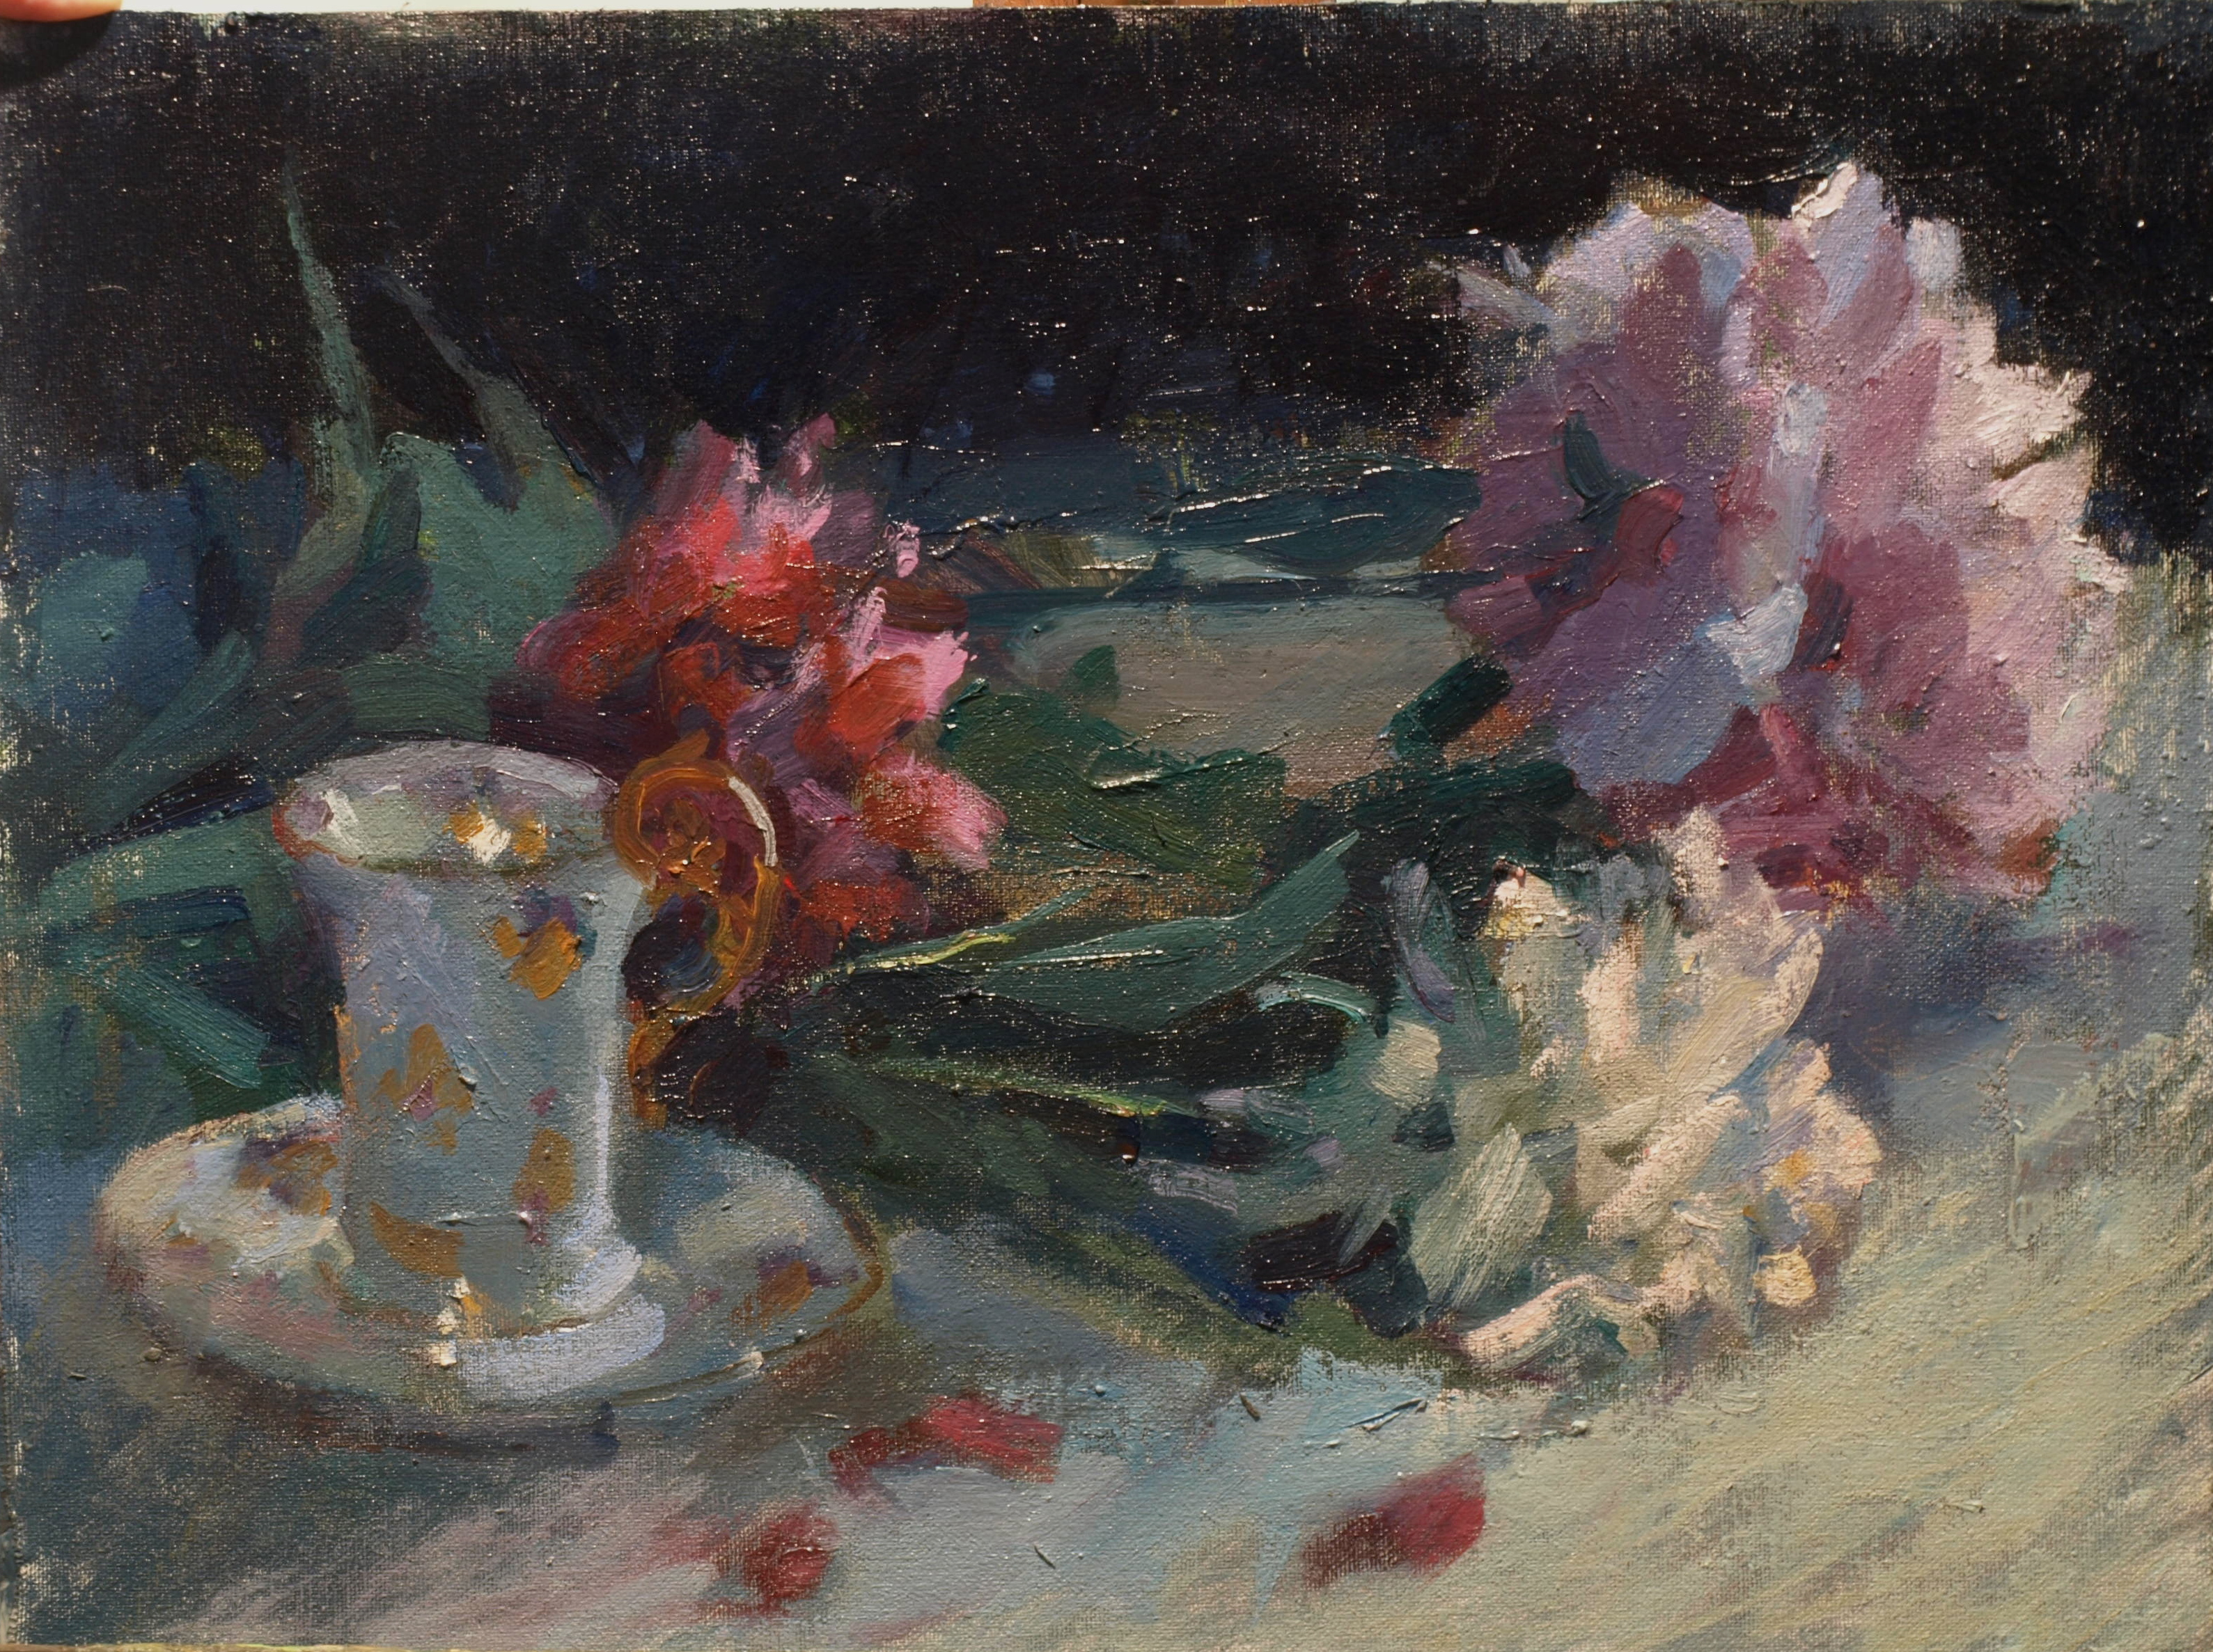 Peonies and Chocolate Cup, Oil on Canvas on Panel, 12 x 16 Inches, by Susan Grisell, $300